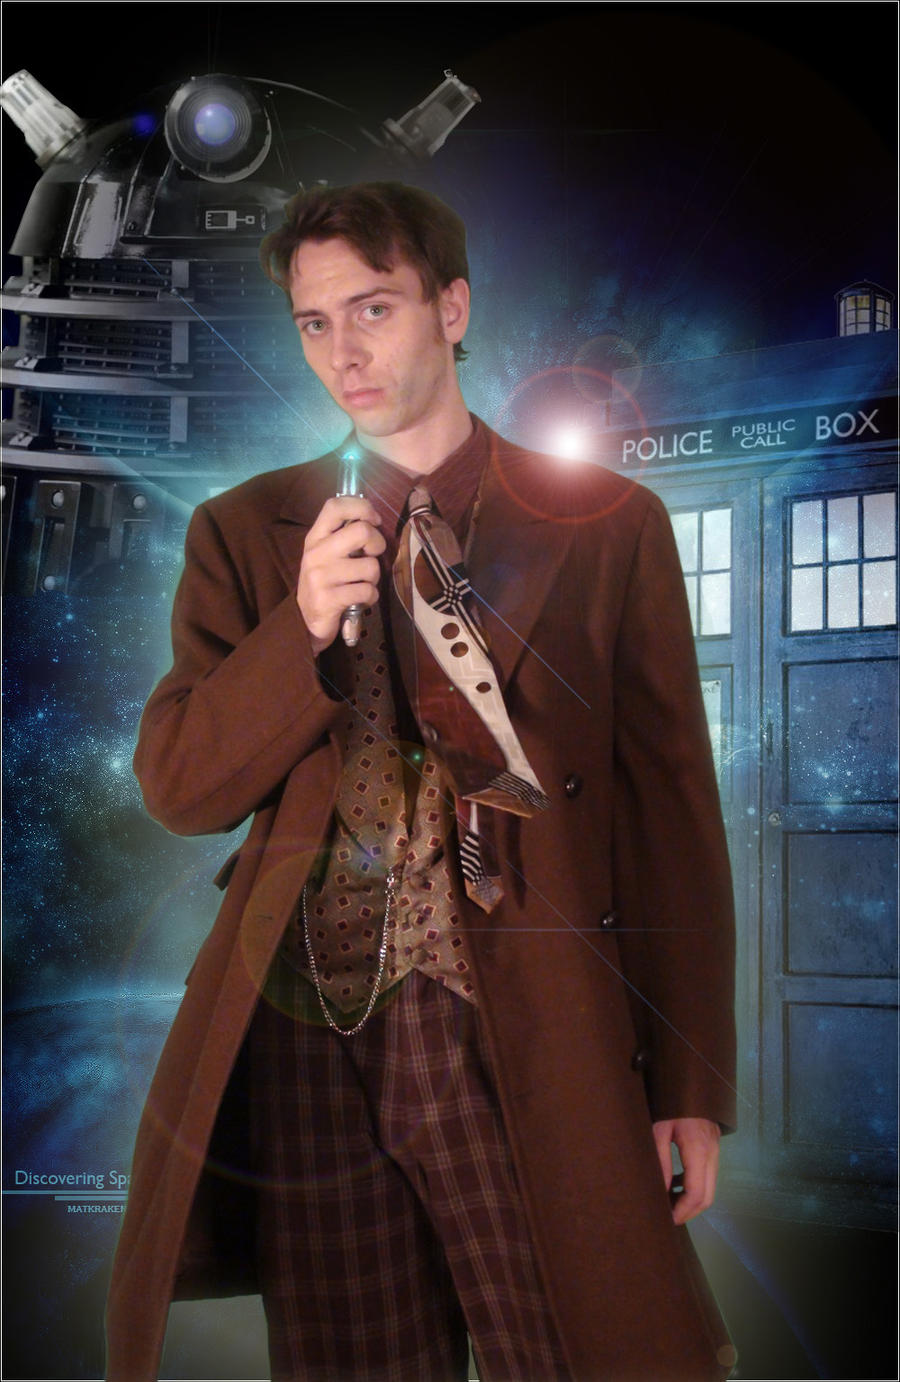 The-16th-Doctor's Profile Picture